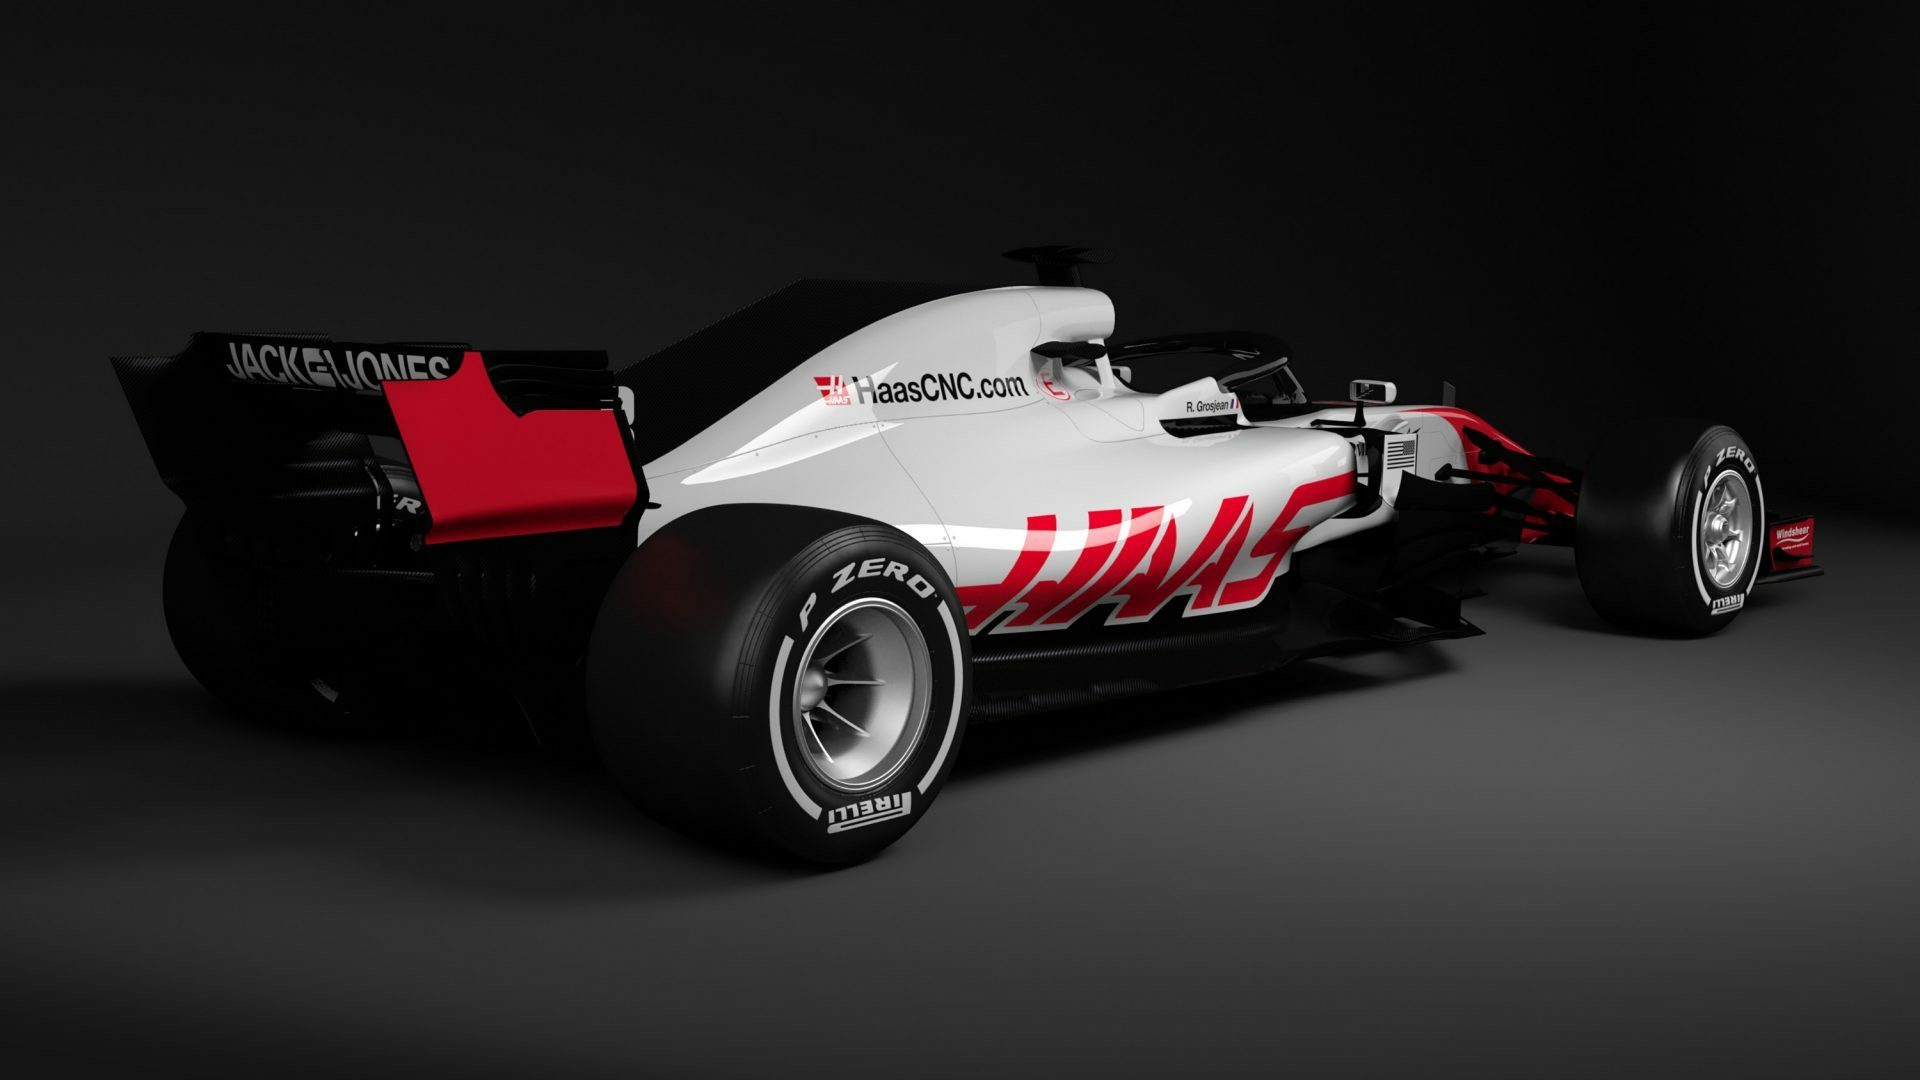 Haas Team2019 F1 Racer Wallpapers HD Wallpapers 1920x1080